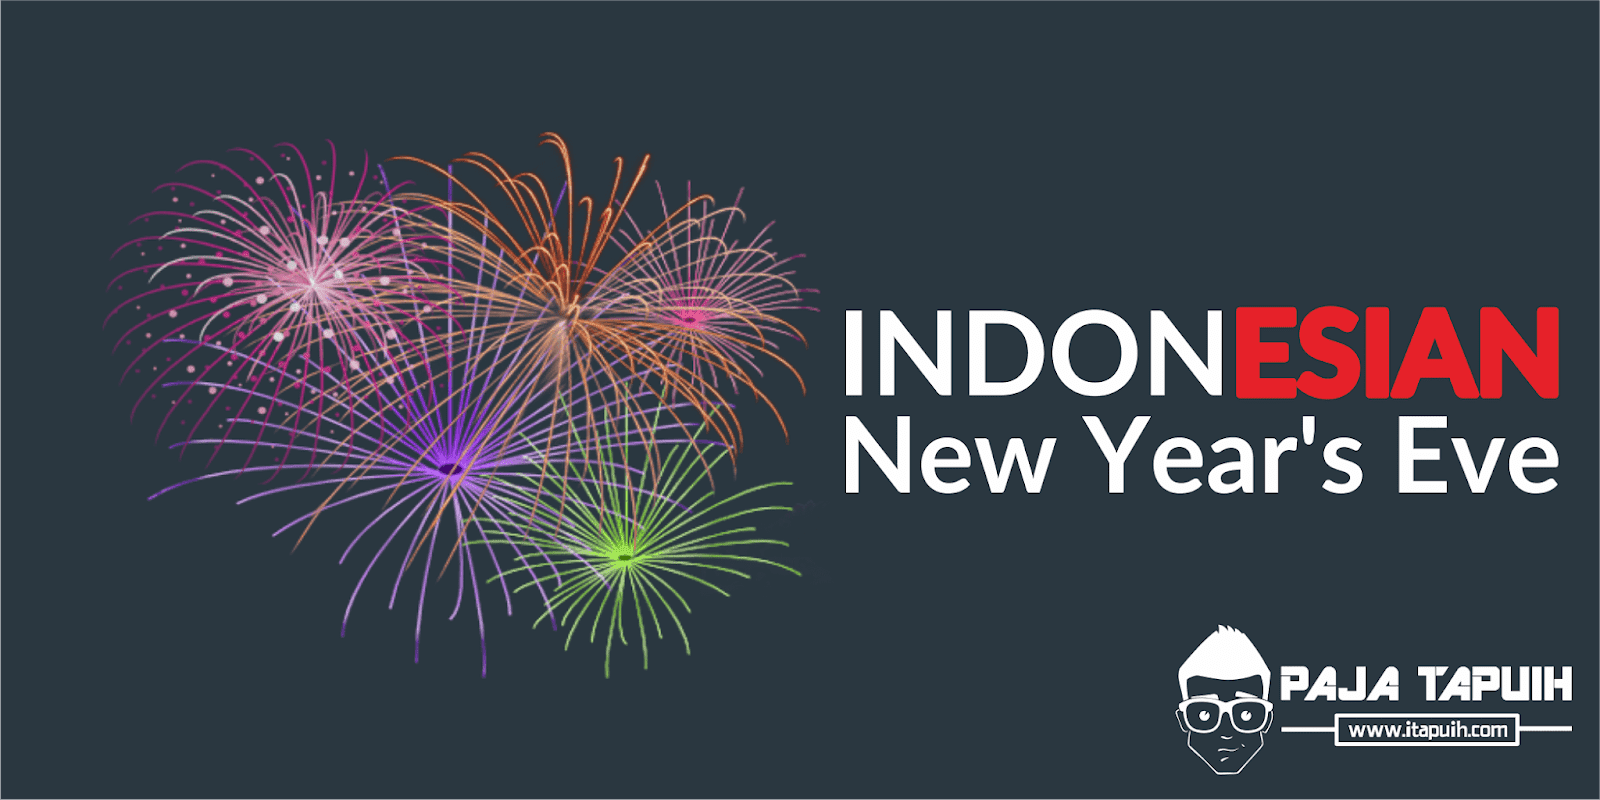 6 Unique Indonesian Traditions for Celebrating New Years Eve